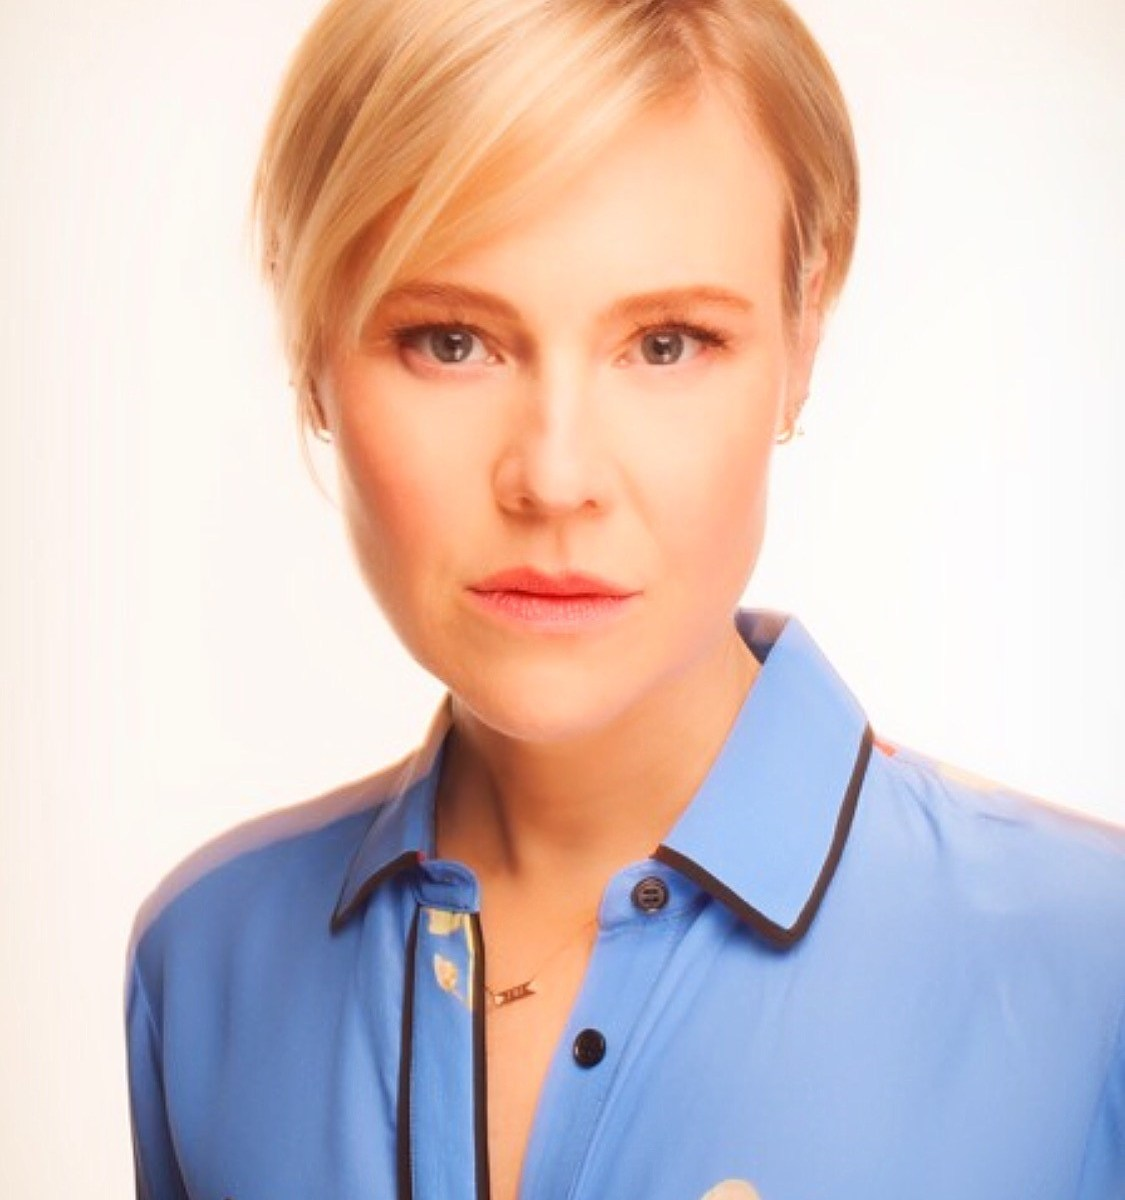 10 Questions With Kristin Booth